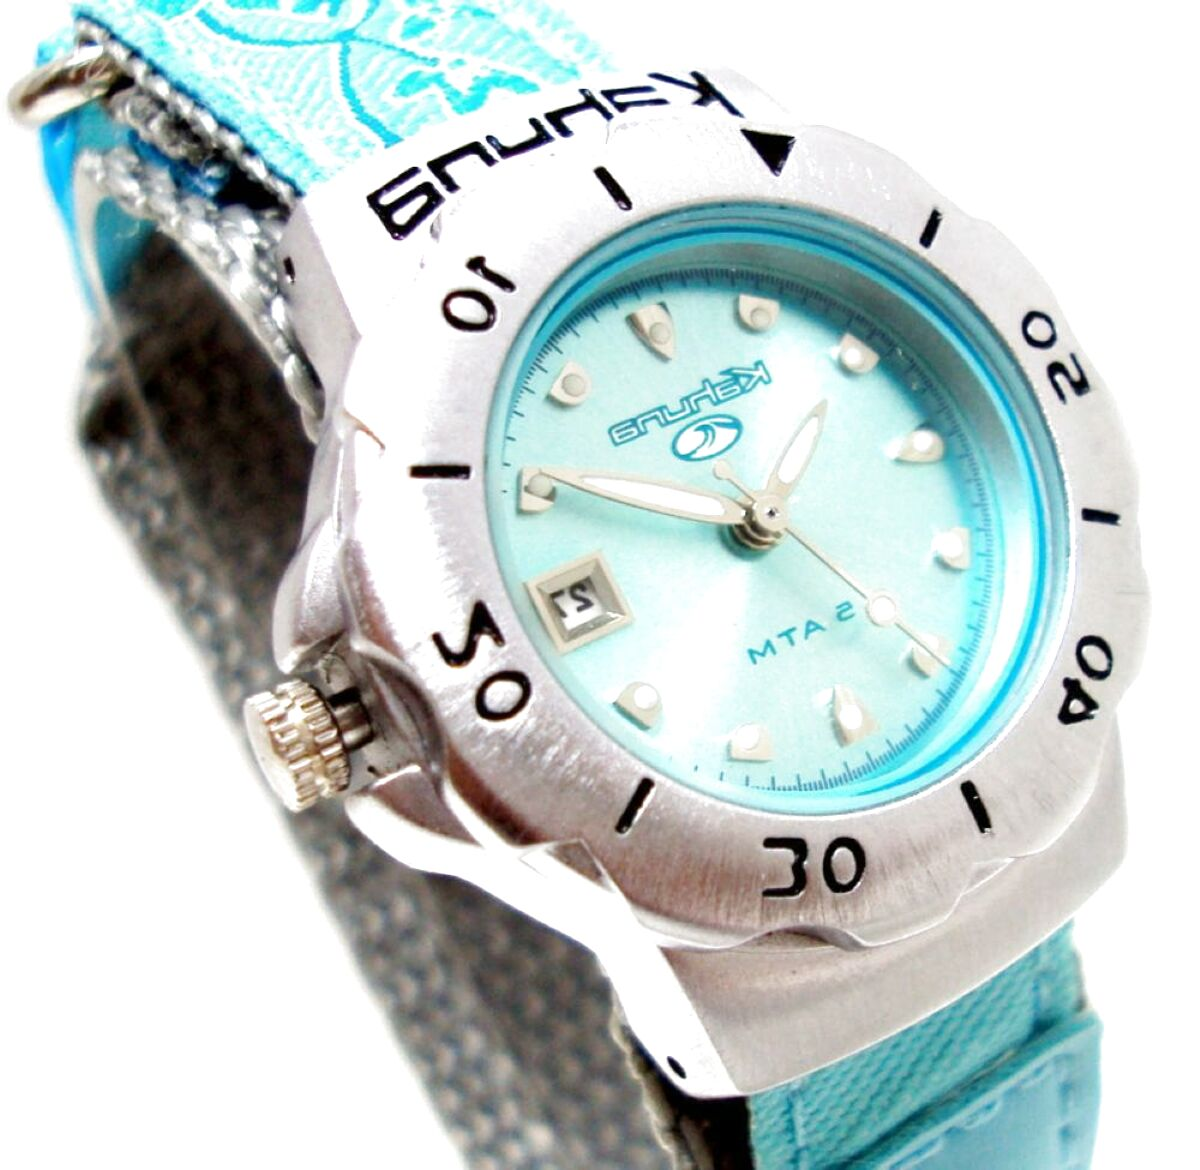 kahuna ladies watch strap for sale